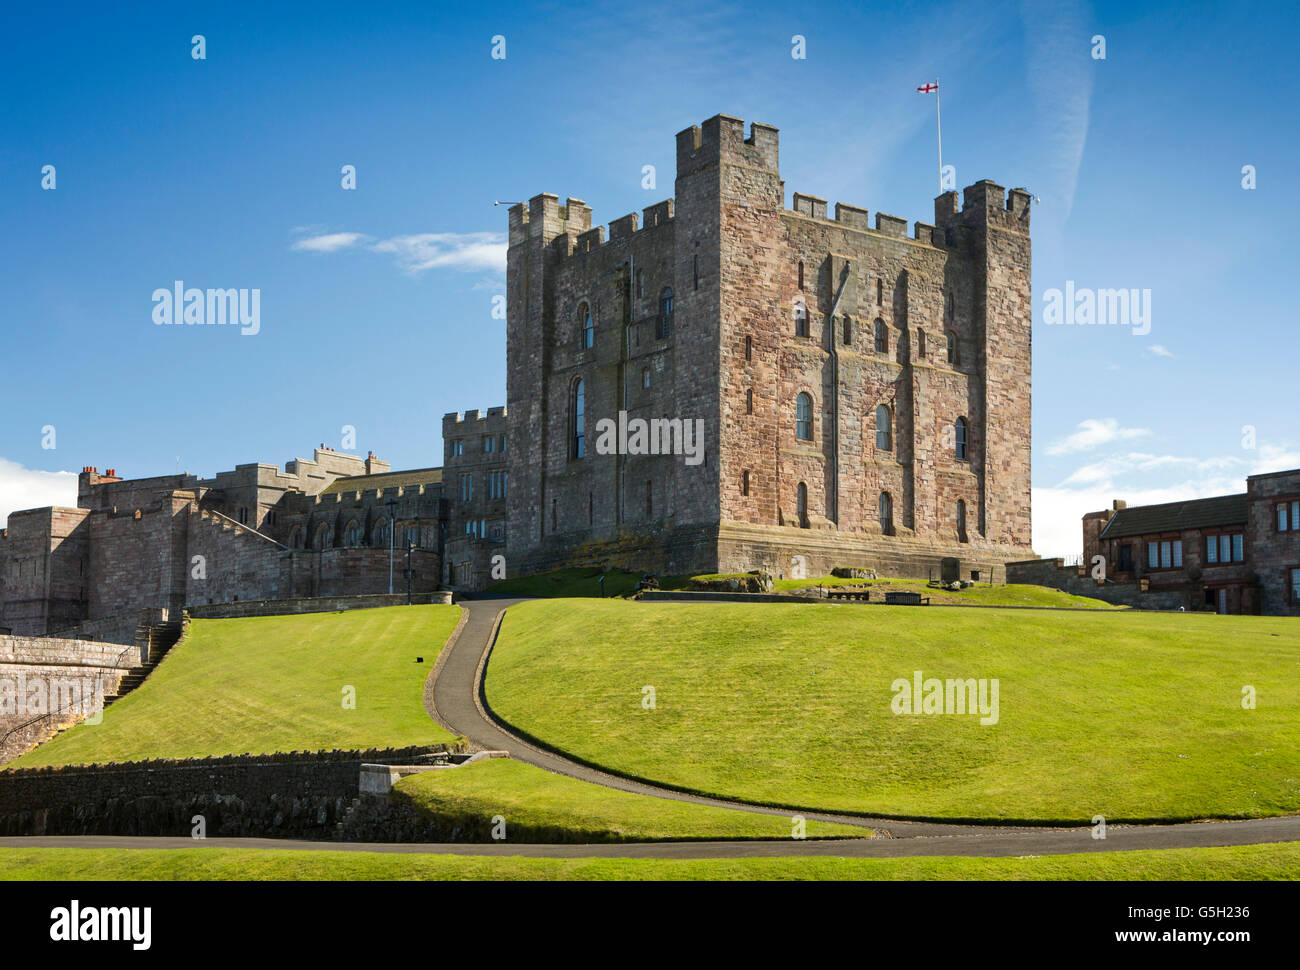 UK, England Northumberland, Bamburgh Castle, C12th Keep, constructed for £4 - Stock Image